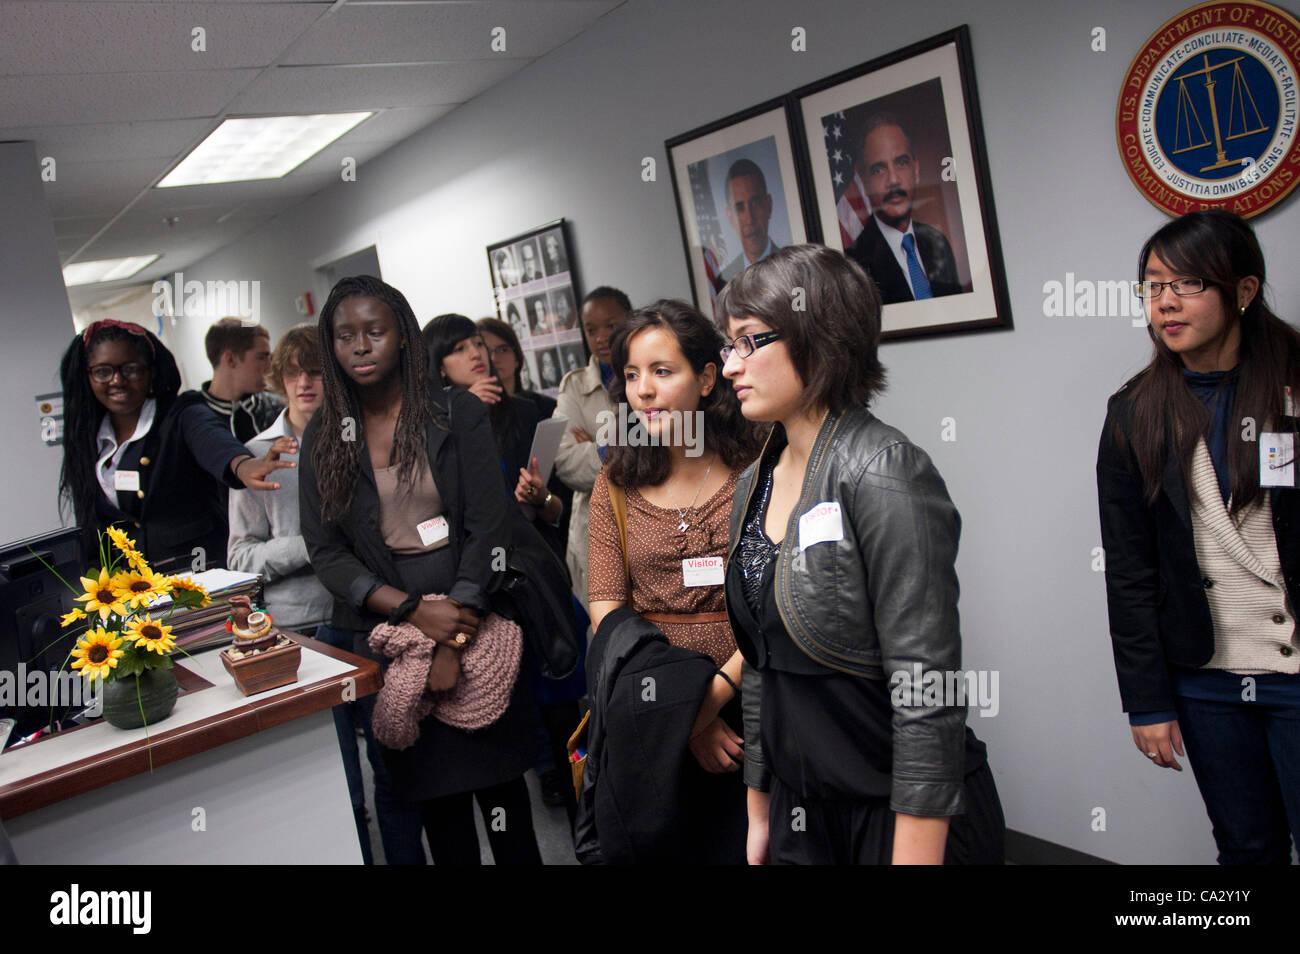 221cb3a6b French Youth Ambassadors visit the Department of Justice and the U.S.  Capitol as well as have